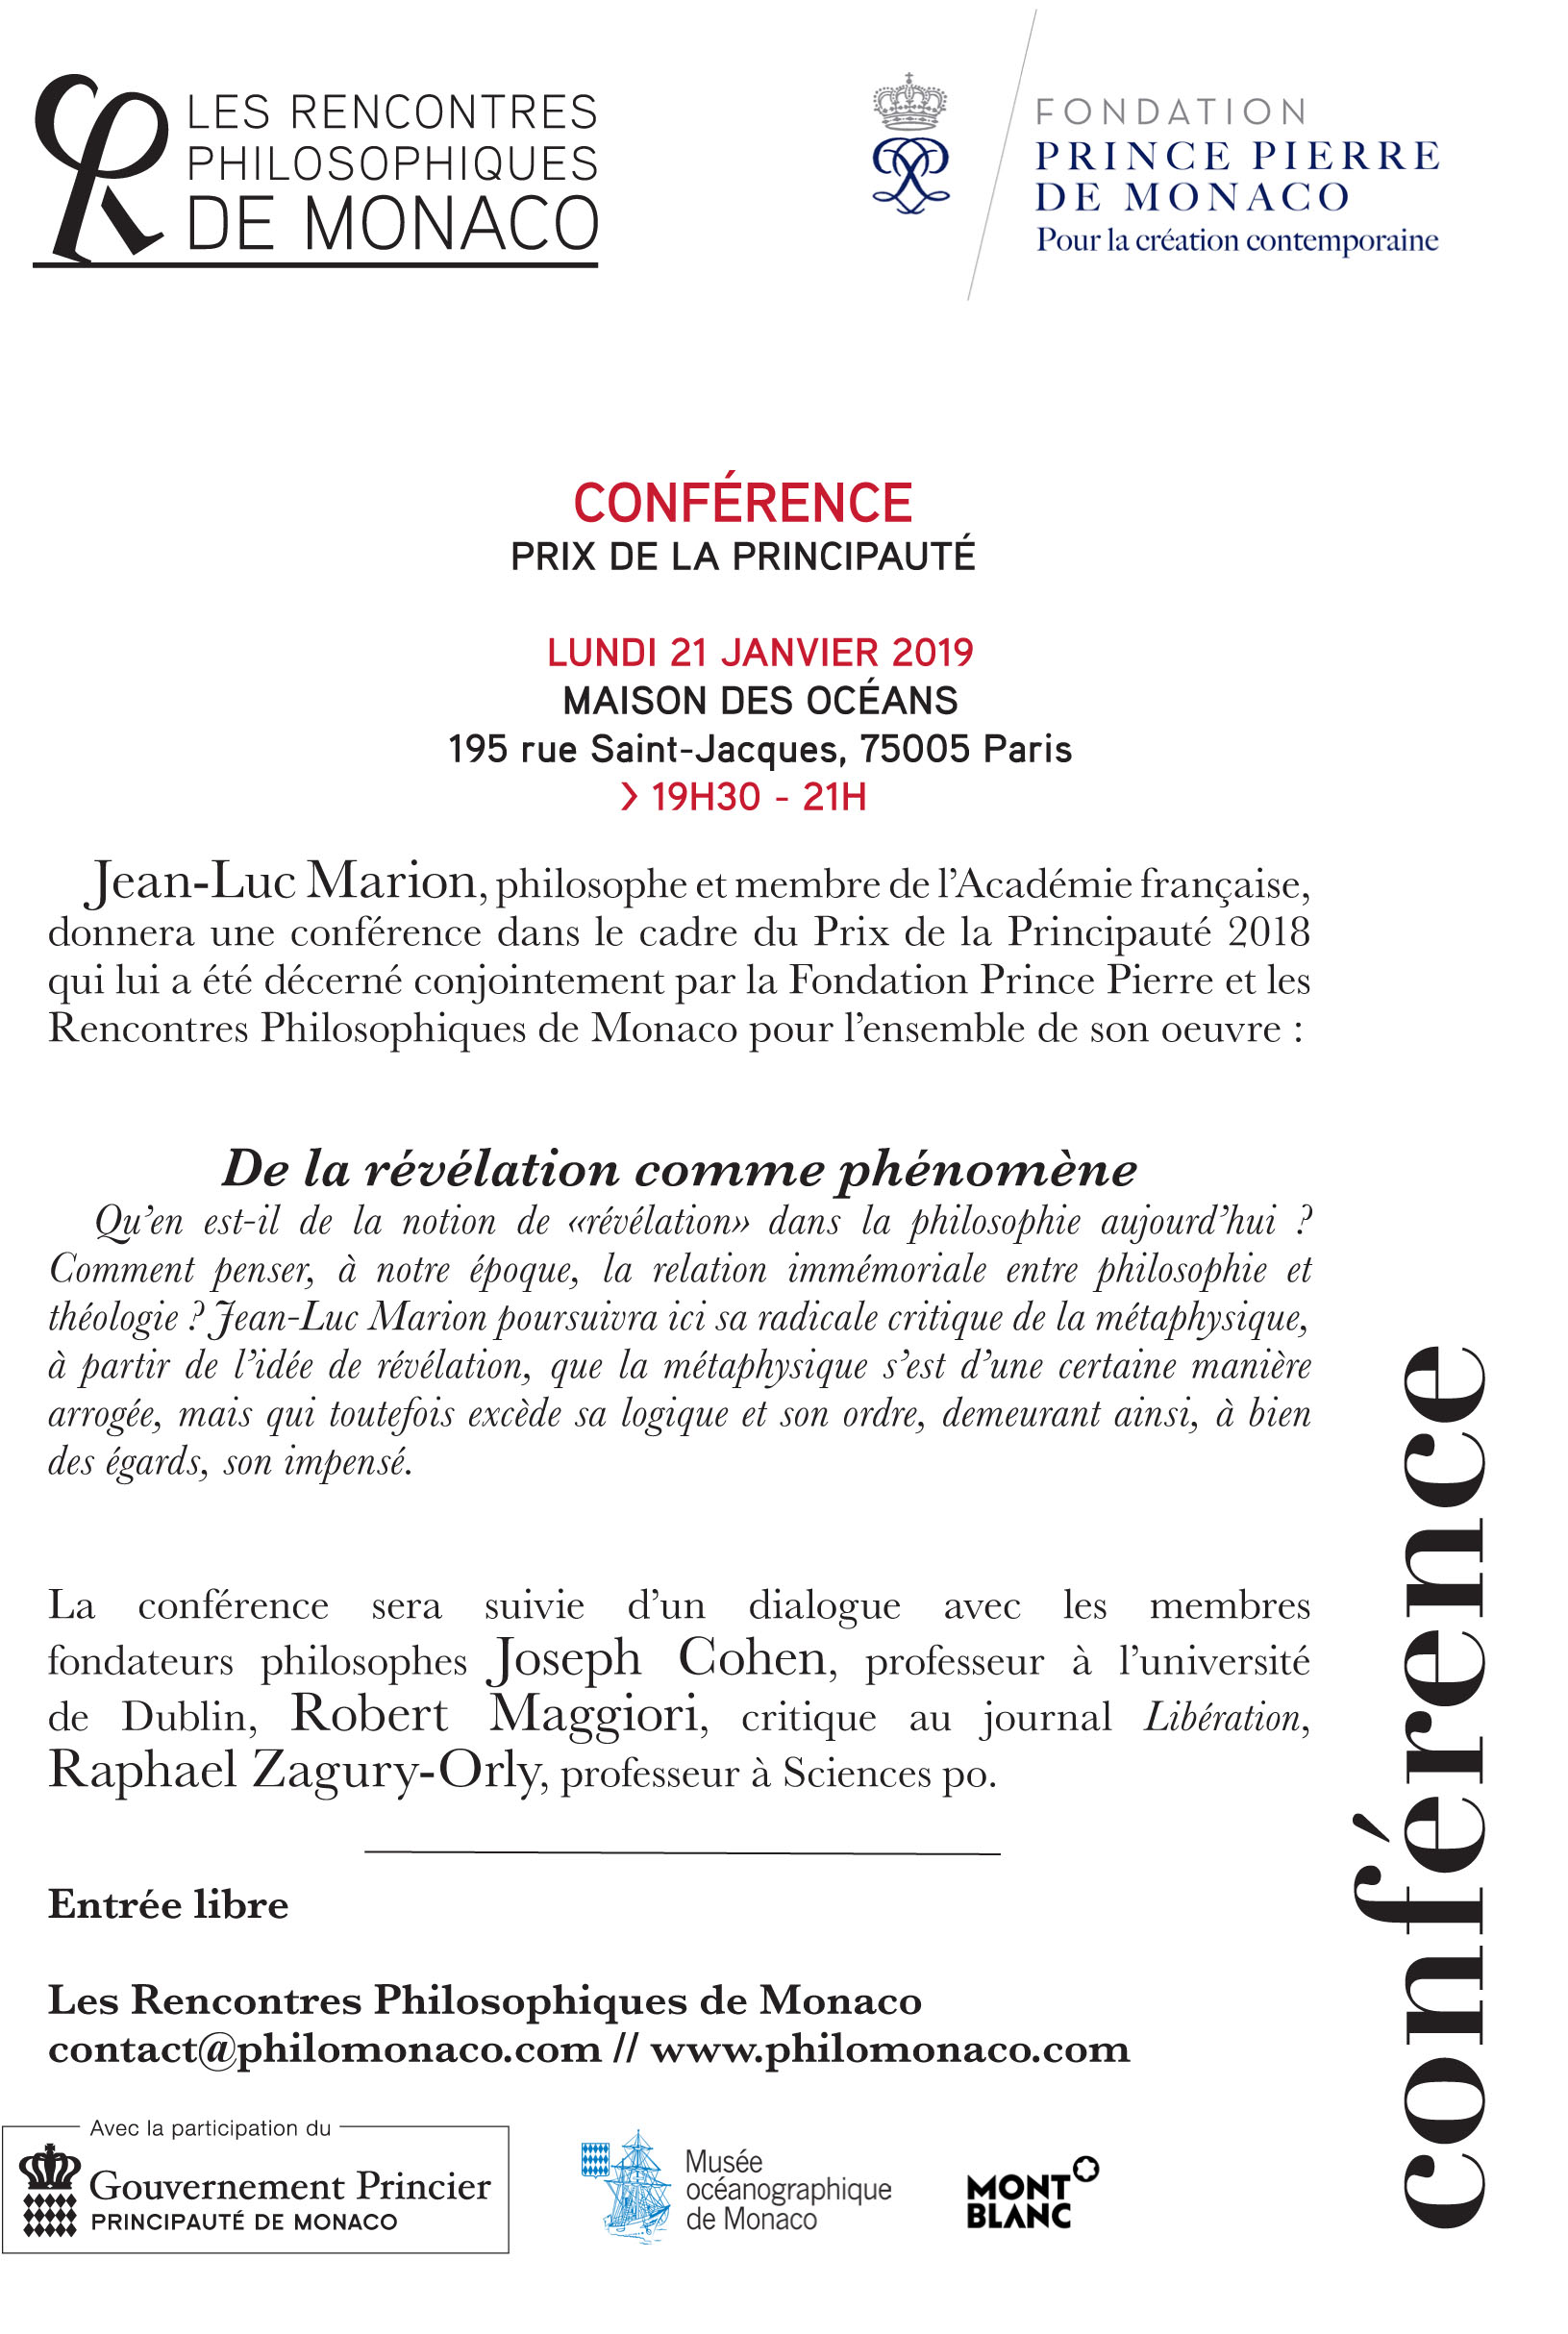 5224, 5224, Flyer Paris Marion 2, flyer-paris-marion-2.jpg, 532710, http://philomonaco.com/wp-content/uploads/2019/01/flyer-paris-marion-2.jpg, http://philomonaco.com/atelier/de-la-revelation-comme-phenomene/flyer-paris-marion-2/, , 2, , , flyer-paris-marion-2, inherit, 5222, 2019-01-10 14:26:48, 2019-01-10 14:26:48, 0, image/jpeg, image, jpeg, http://philomonaco.com/wp-includes/images/media/default.png, 1631, 2428, Array